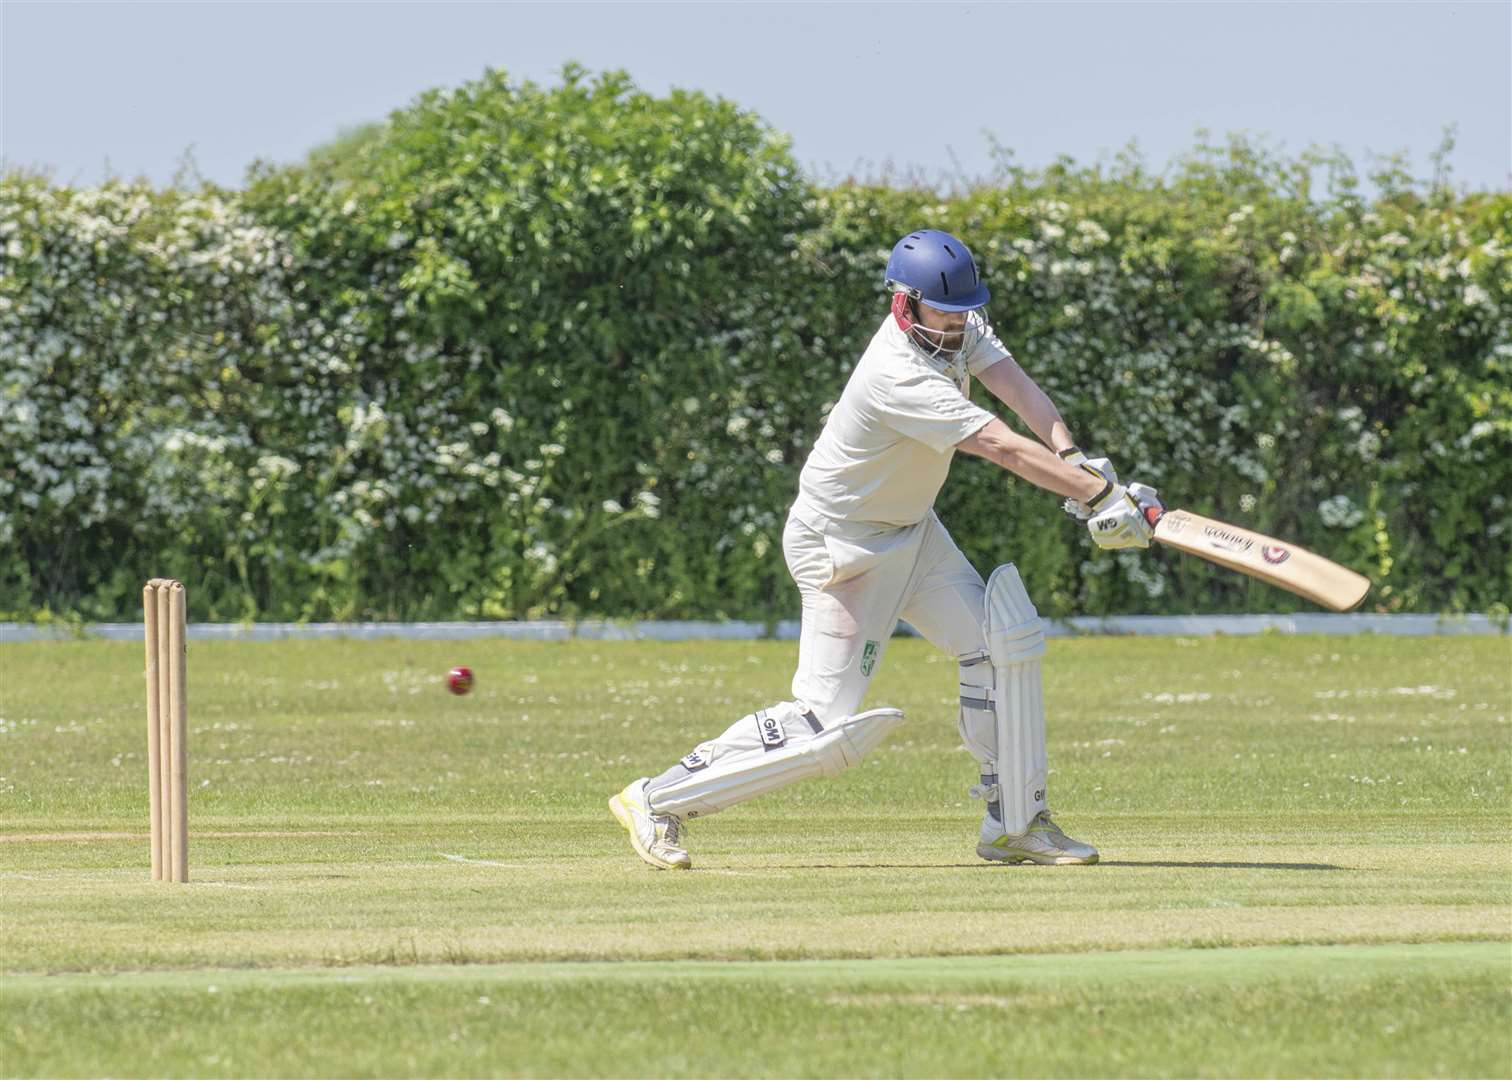 Uffington 2nds v Burghley Park. Photo: Lee Hellwing (2108518)